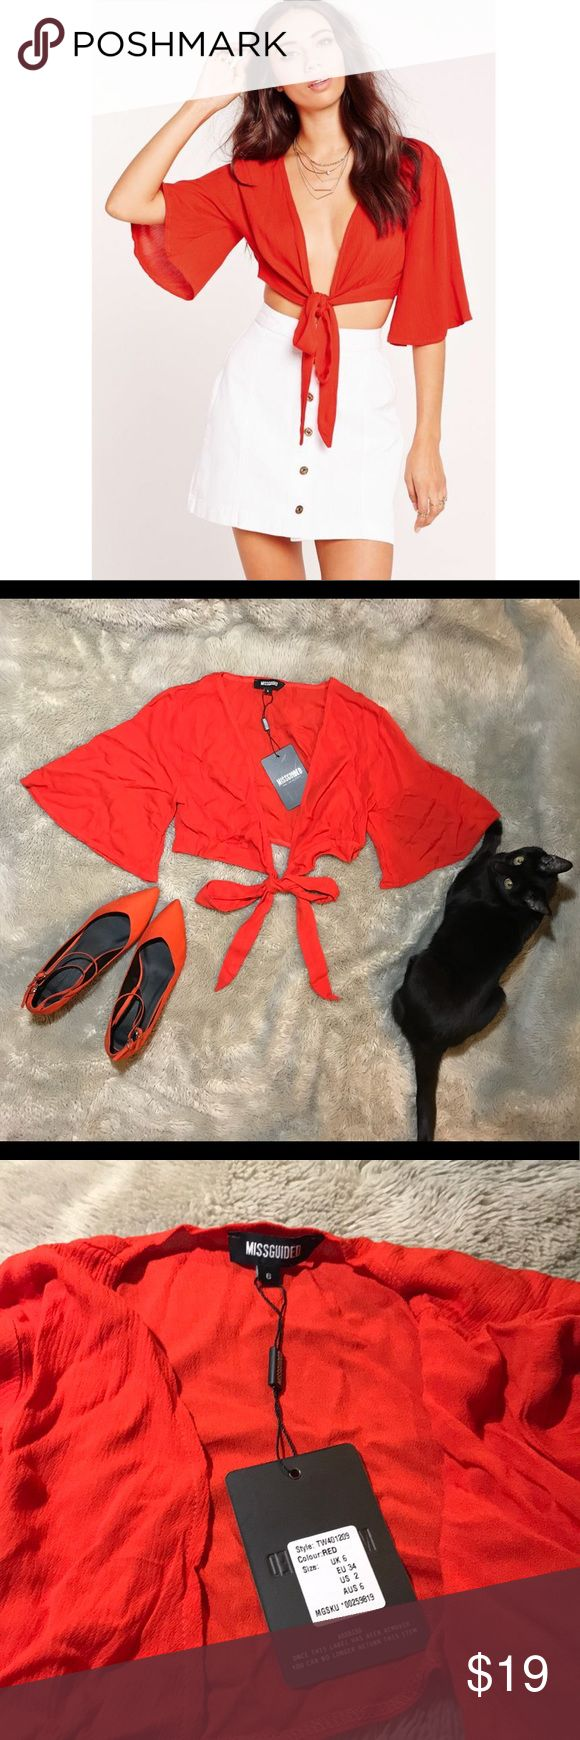 NWT missguided Red Orange wrap crop top 🍊 Cute n bold! Gorgeous red orange colored wrap top from missguided. Light summer material. super cute, the only reason I'm selling is bc it's a little too small for me :( Just needs a little steaming!  Halloween kitten not free w purchase! Sorry 😂🖤🖤🖤 Missguided Tops Blouses